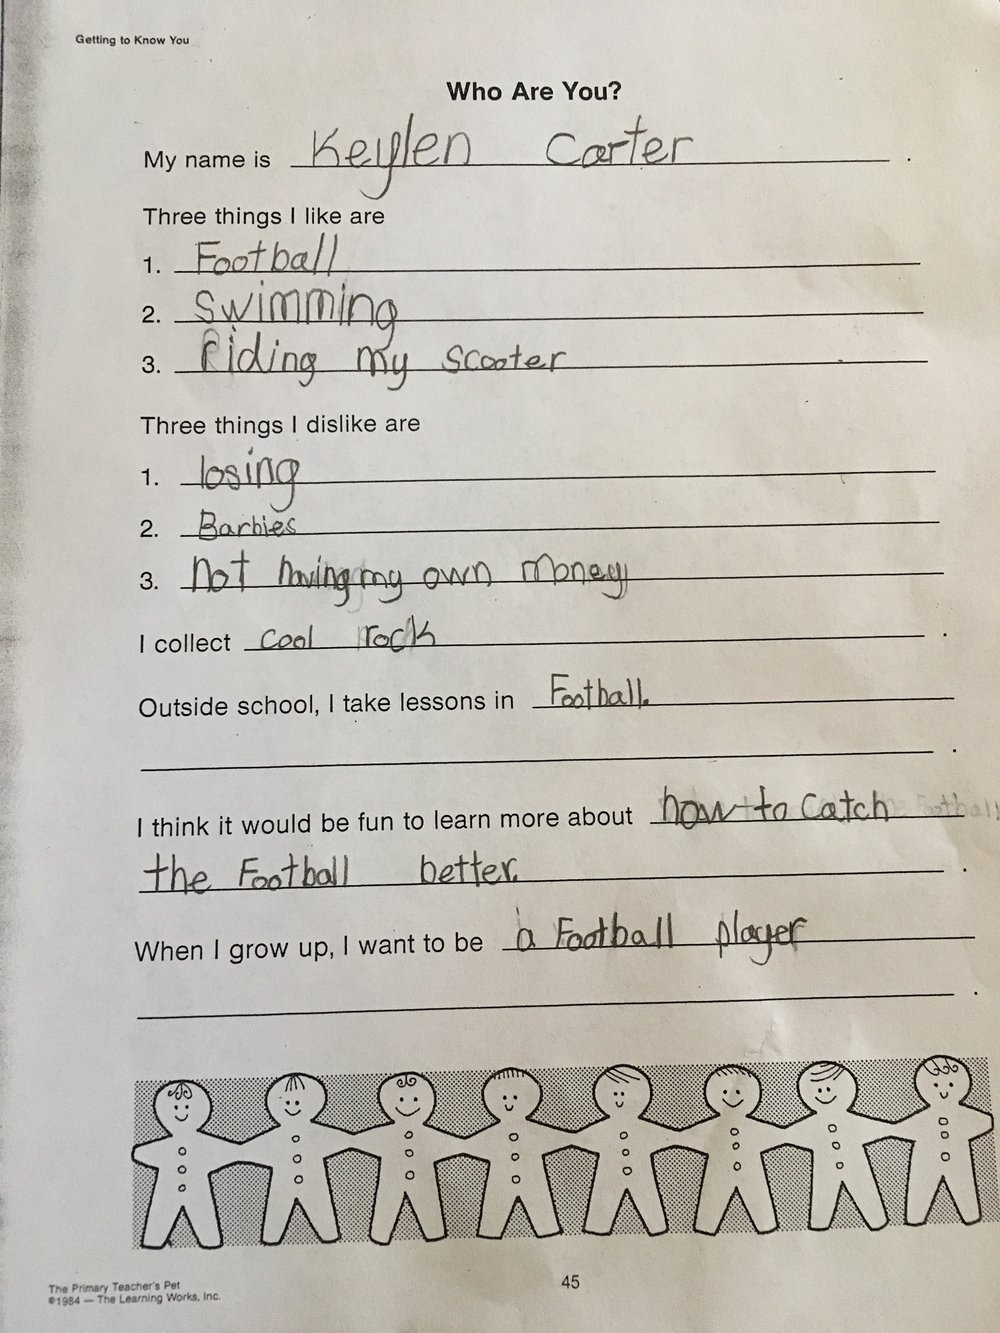 First assignment of 1st grade - getting to know Keylen. ALl of this sounds about right.